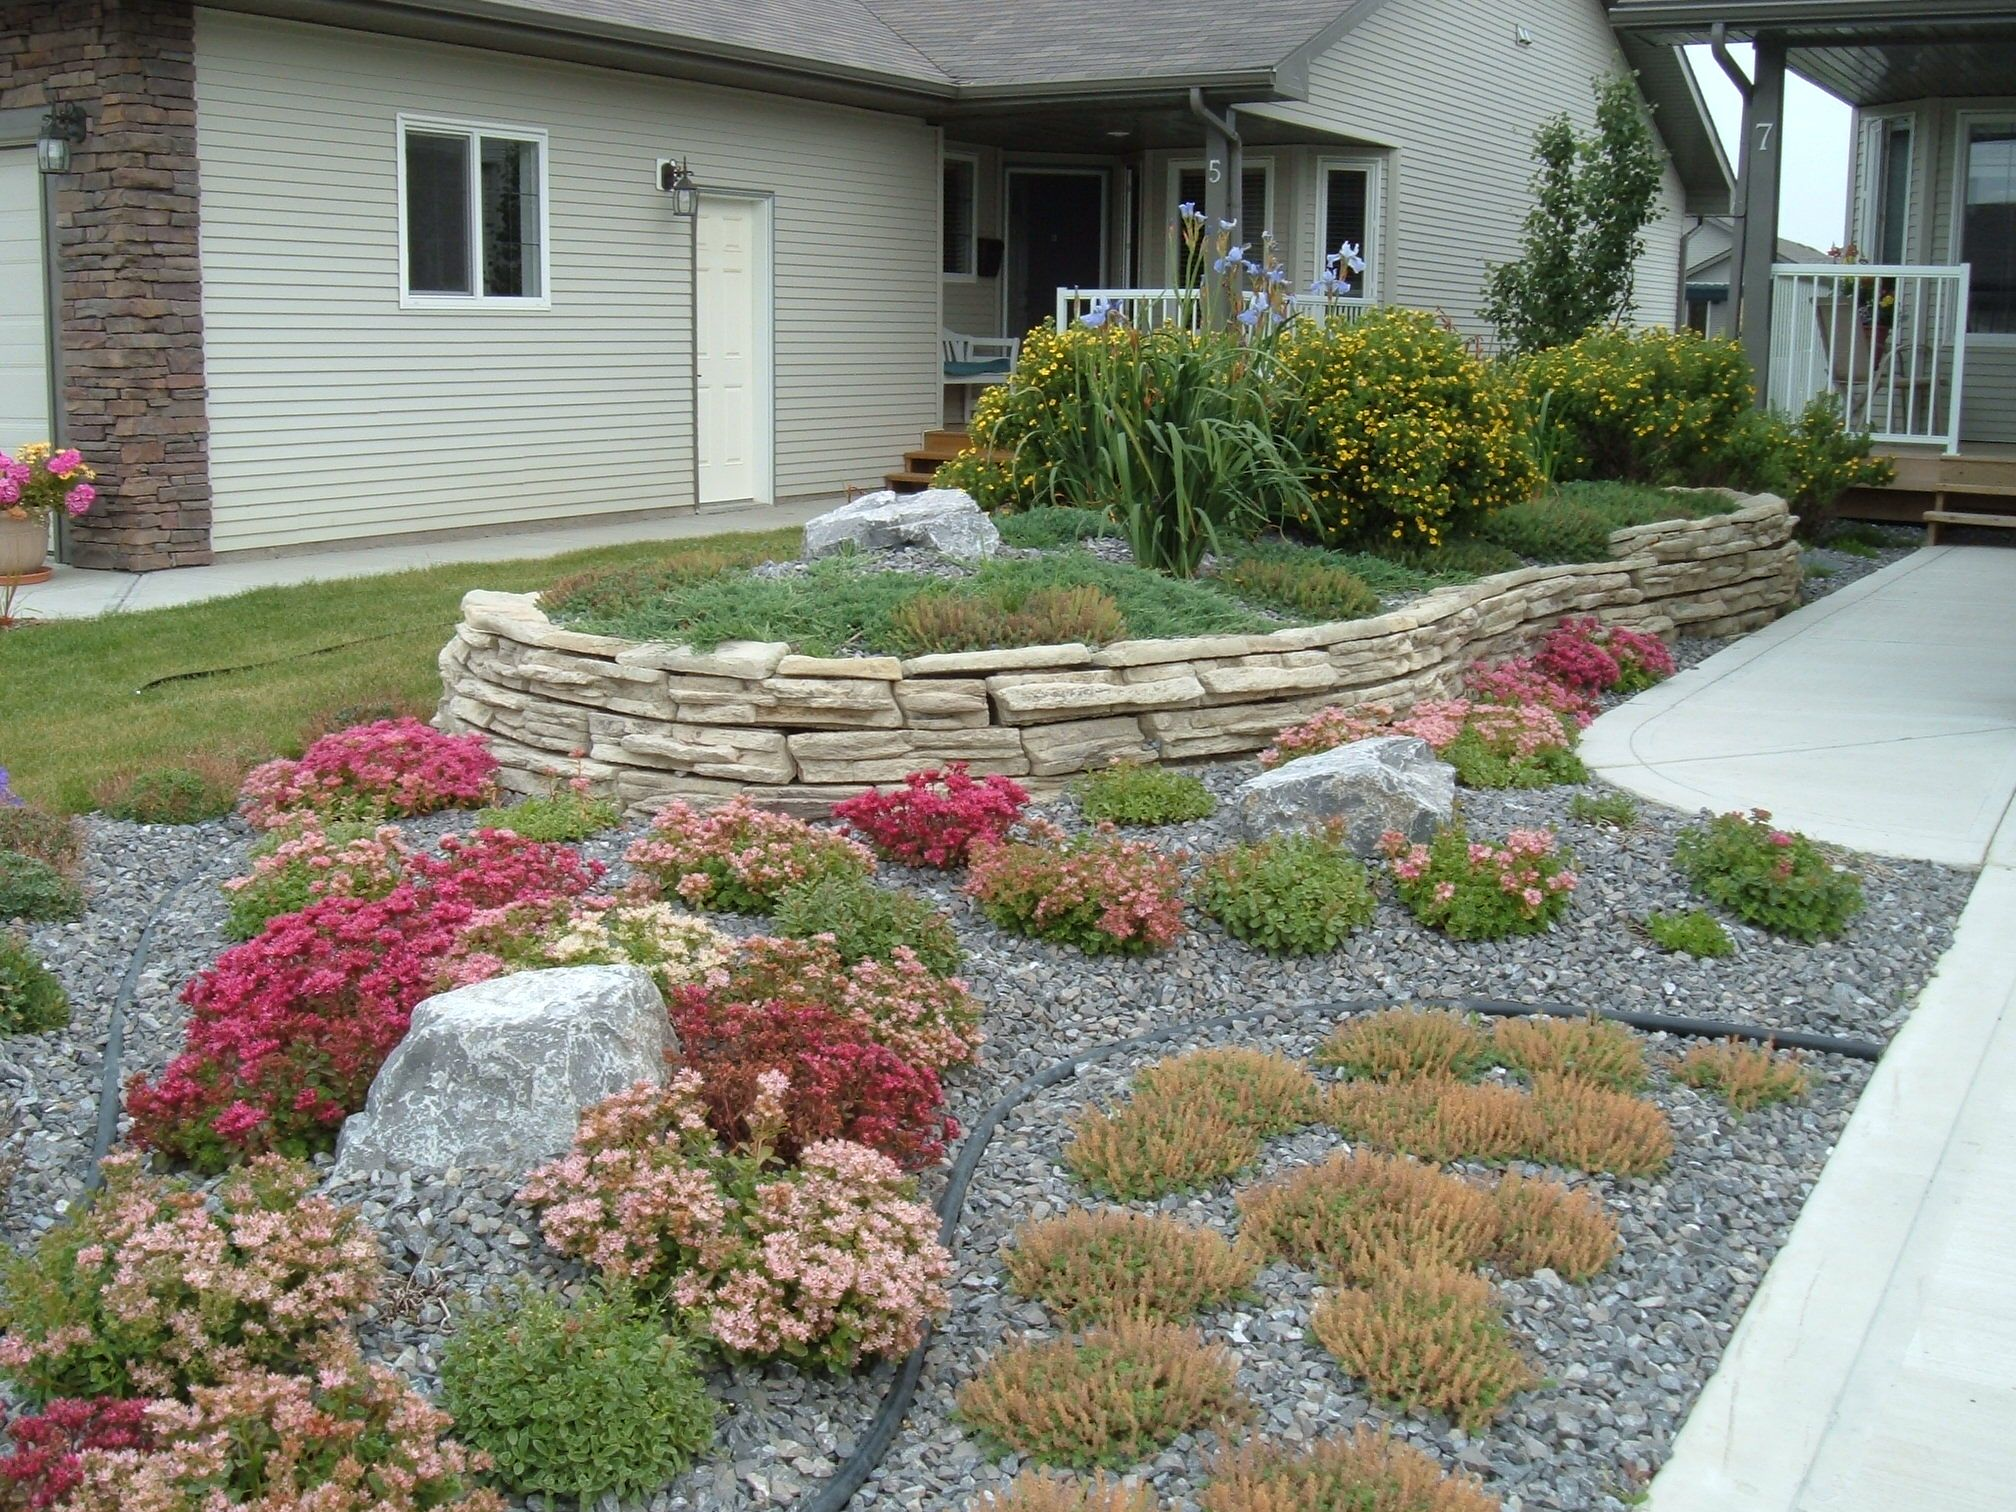 Minimal maintenance landscaping a no lawn front yard with for Lawn and garden landscaping ideas